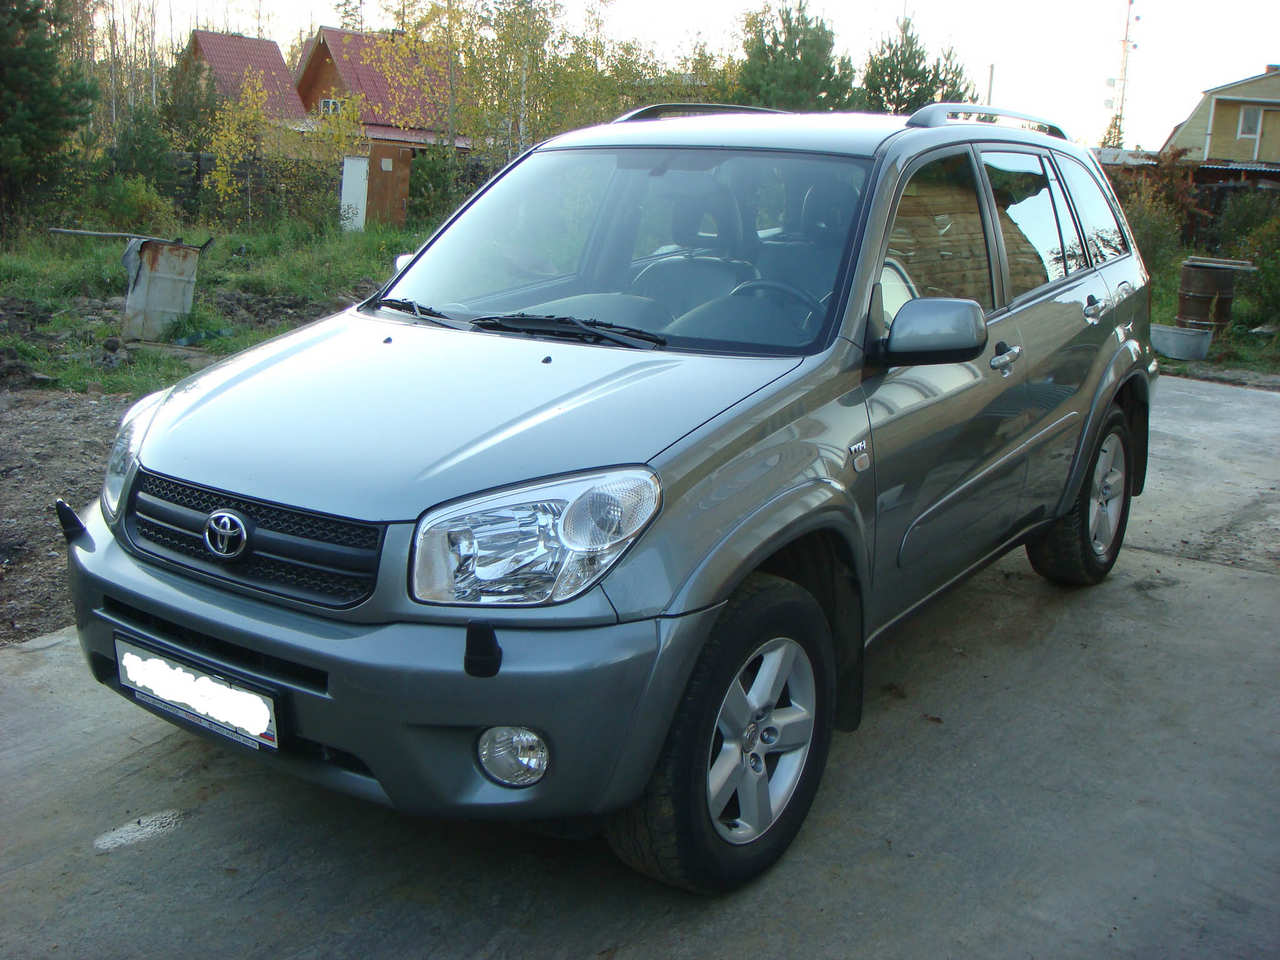 2005 toyota rav4 for sale 2 0 gasoline automatic for sale. Black Bedroom Furniture Sets. Home Design Ideas